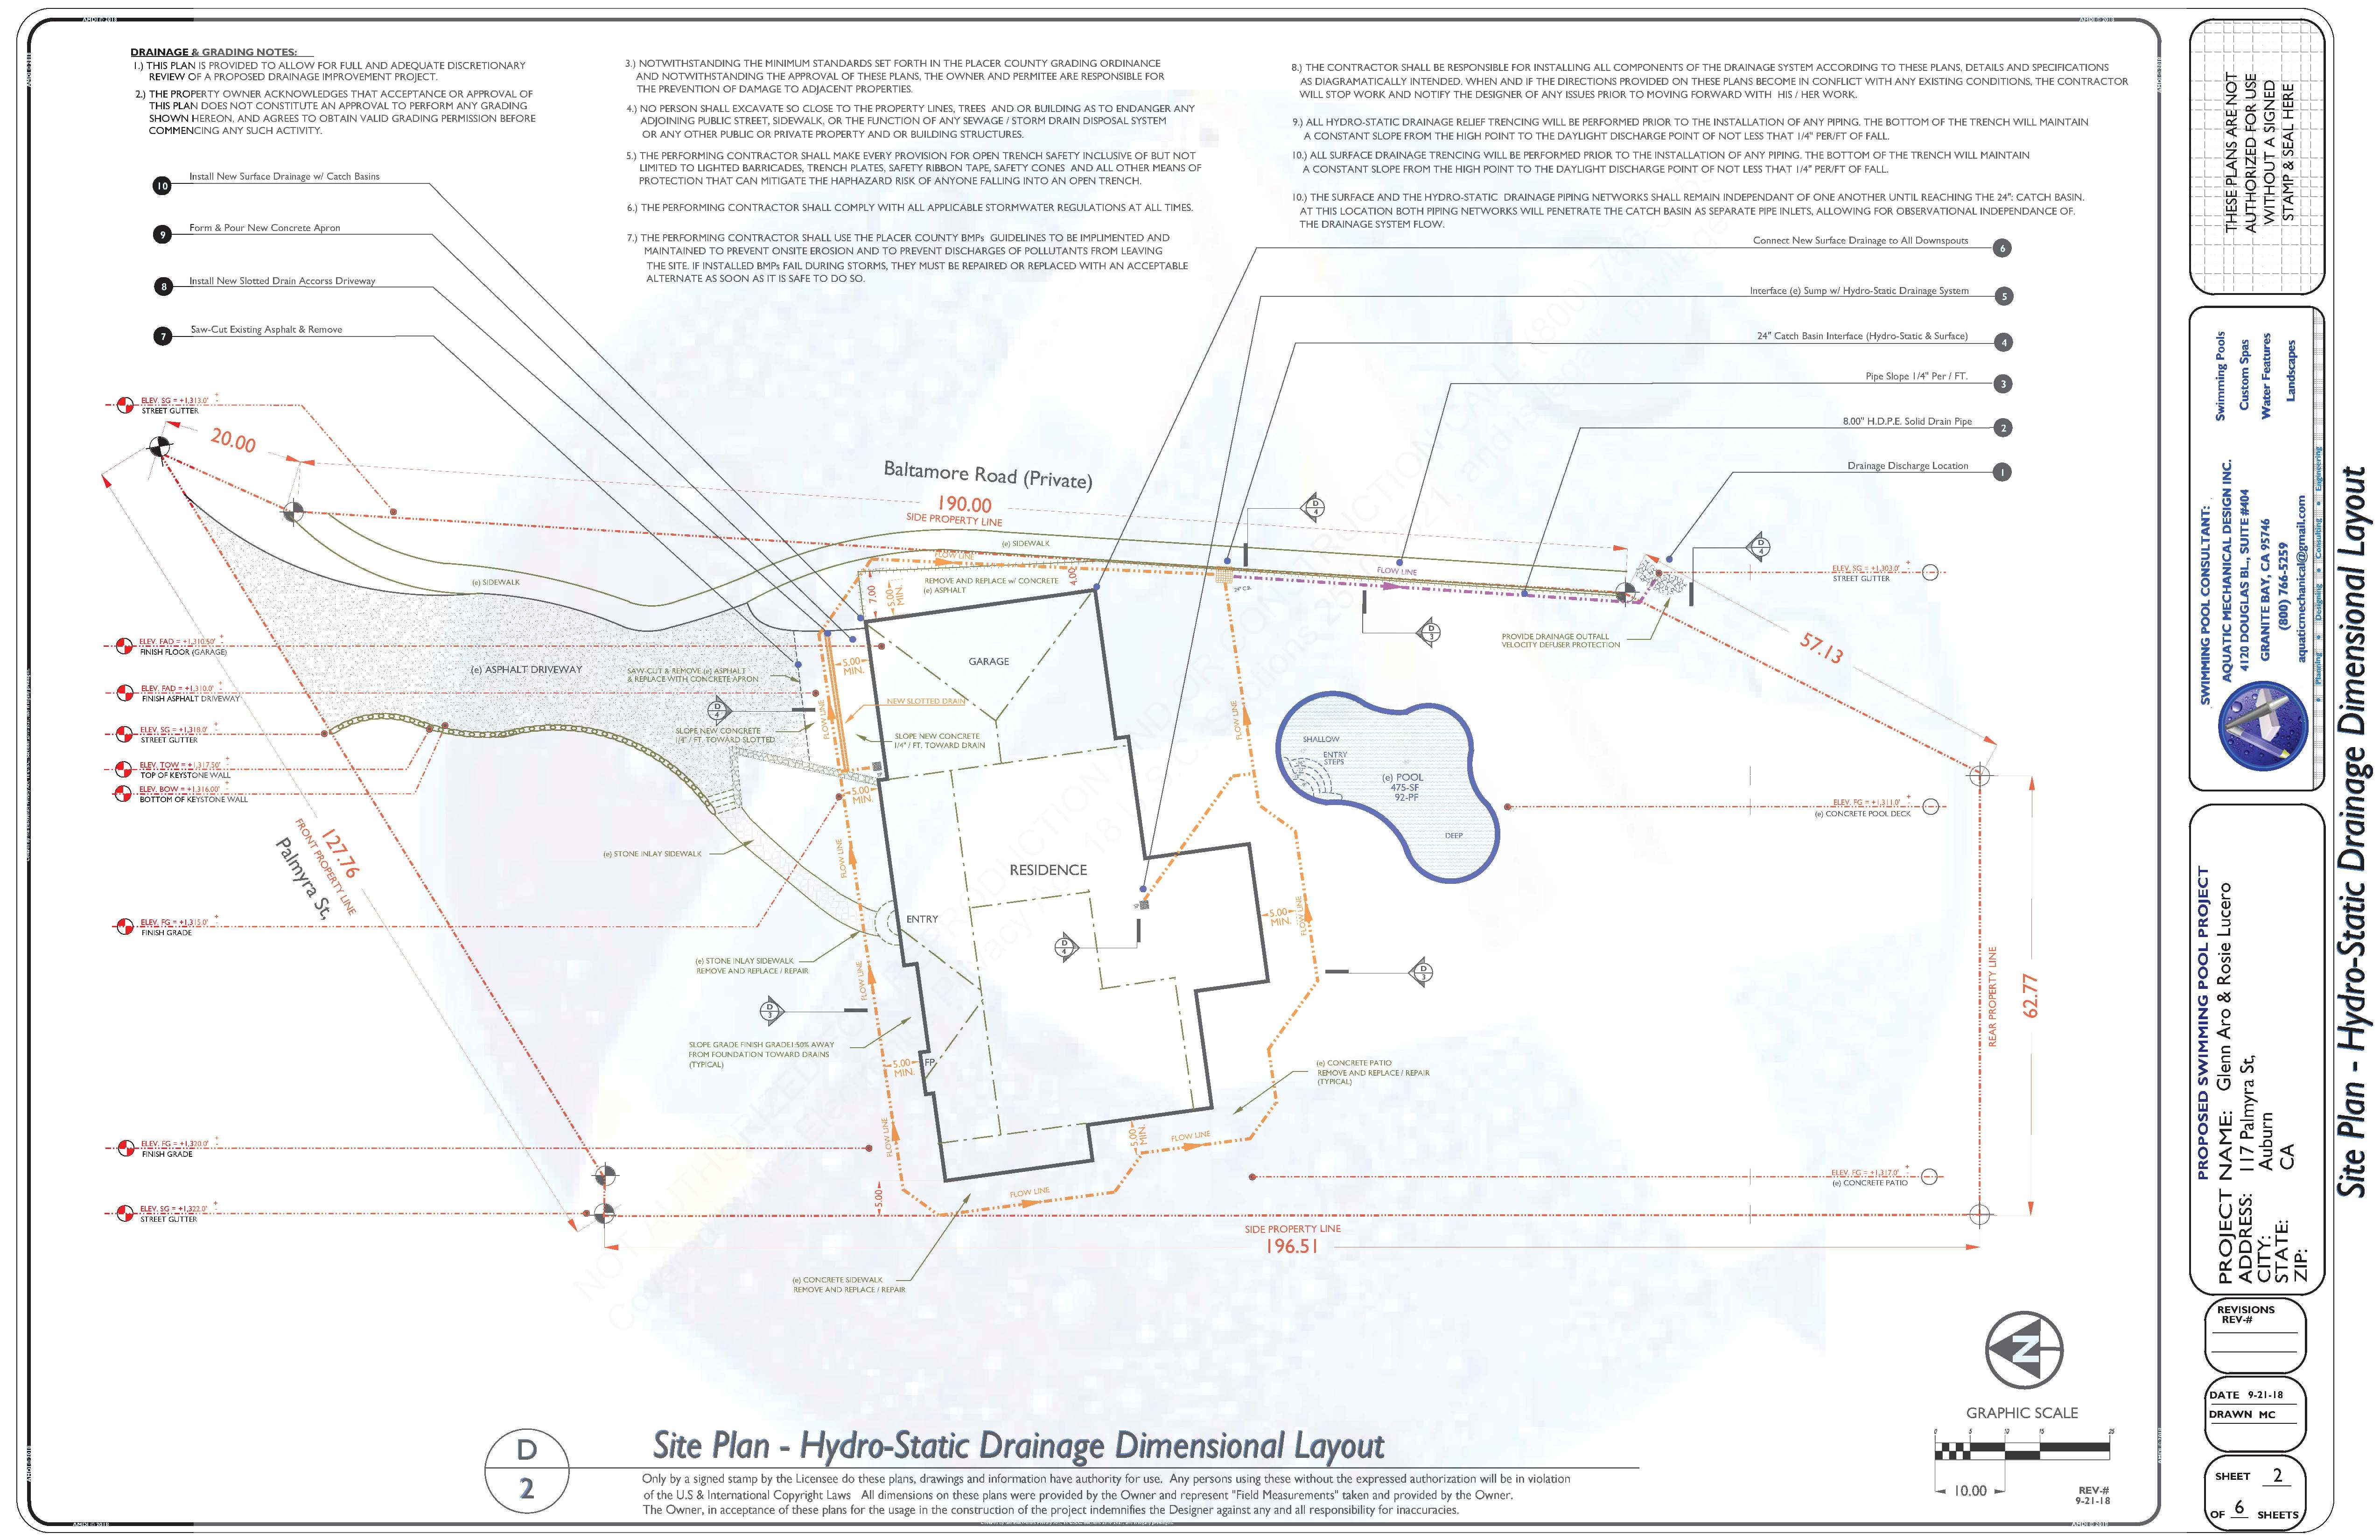 D-2-SITE-PLAN-HYDROSTATIC-DRAINAGE-LAYOUT